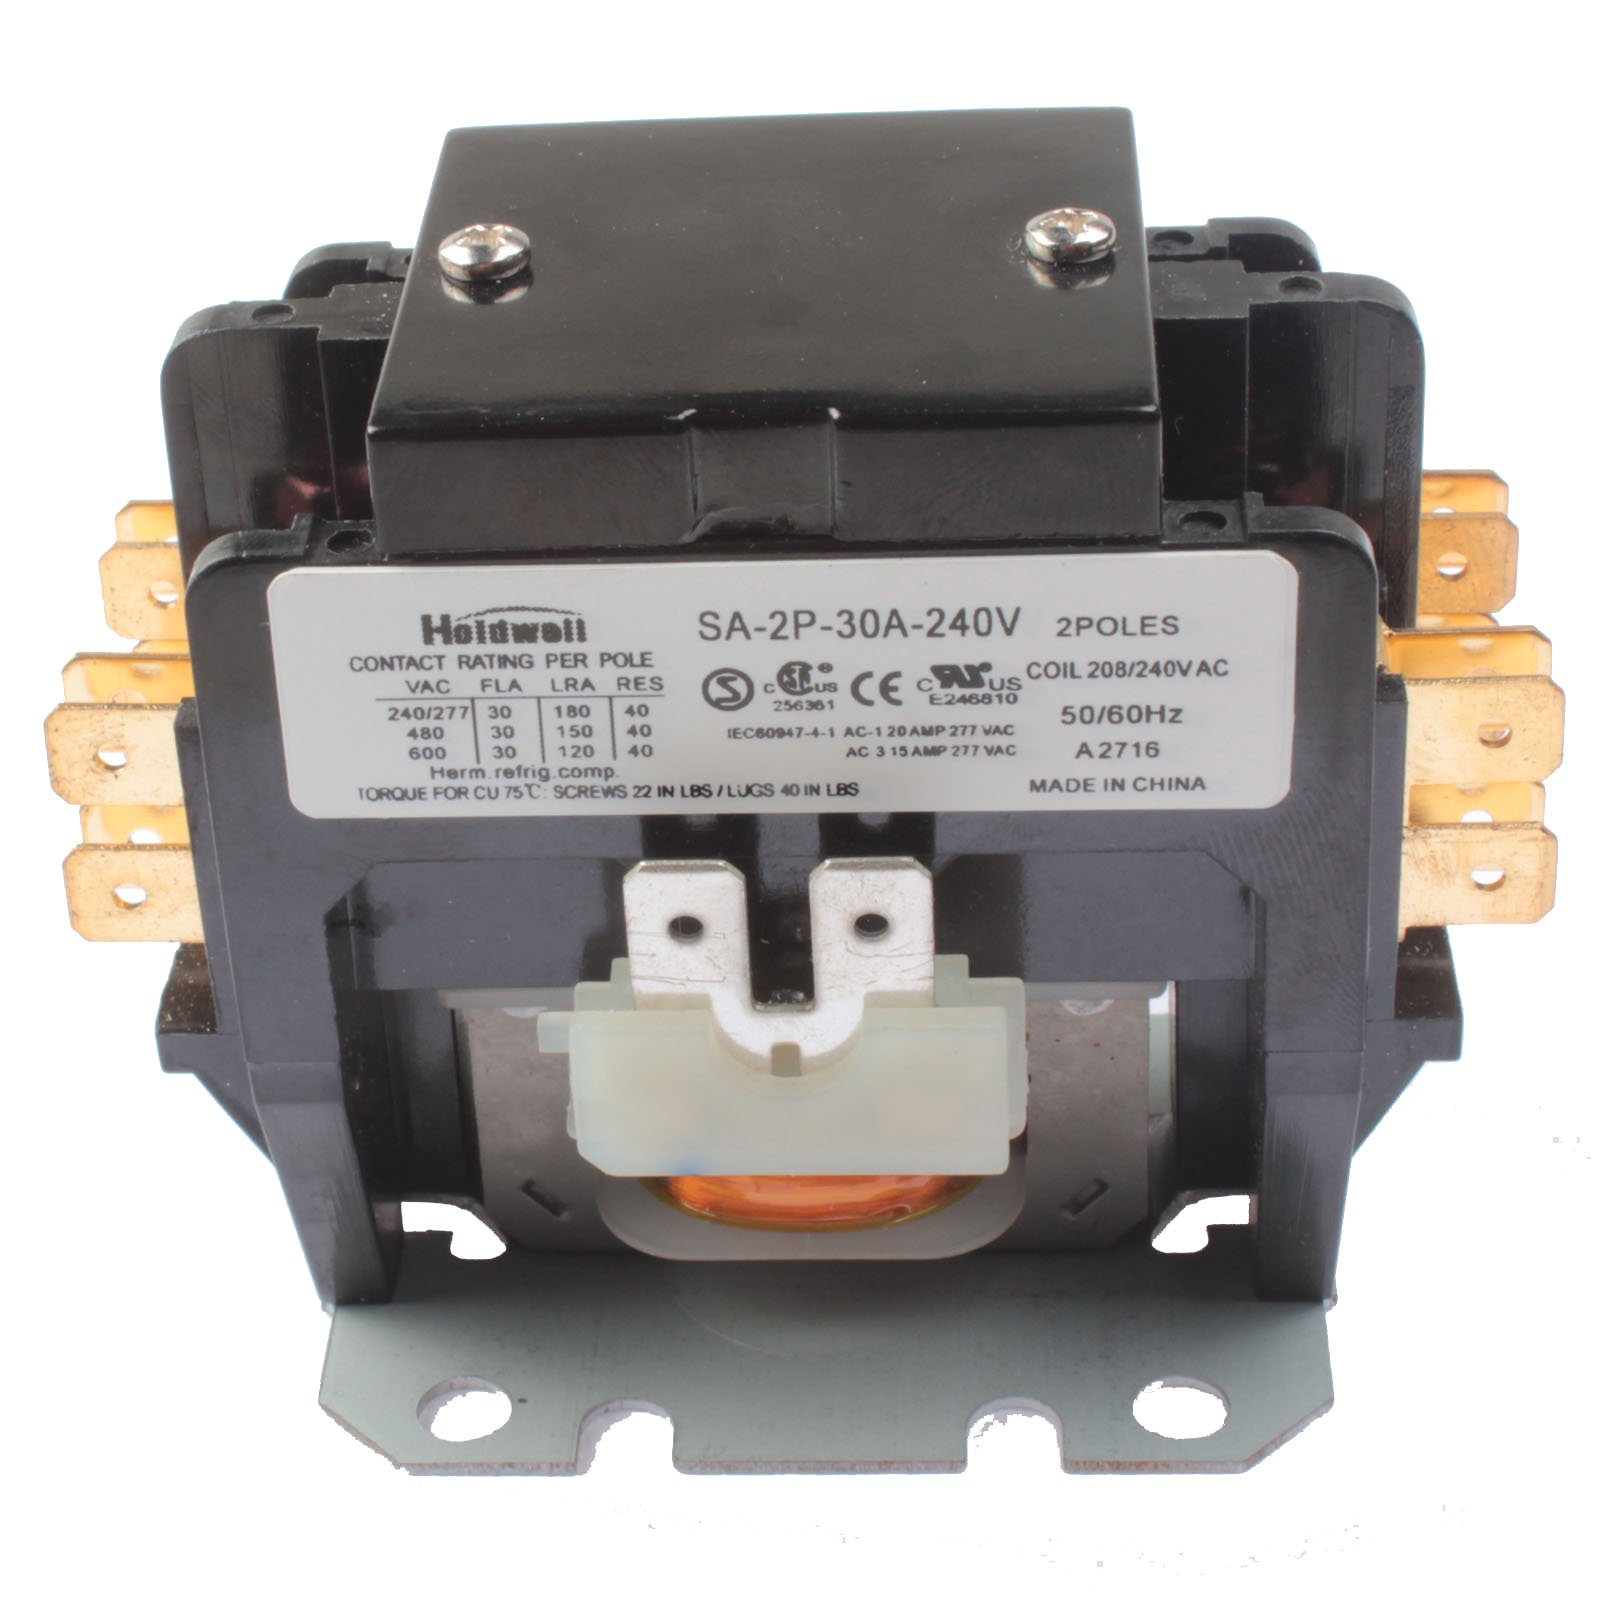 Cutler Hammer Gfci Circuit Breaker 2 Pole 20amp Gfcb220 Cheap 240v 20 Amp Find Deals On Line At Alibabacom Get Quotations Holdwell Sa 2p 30a 25 30